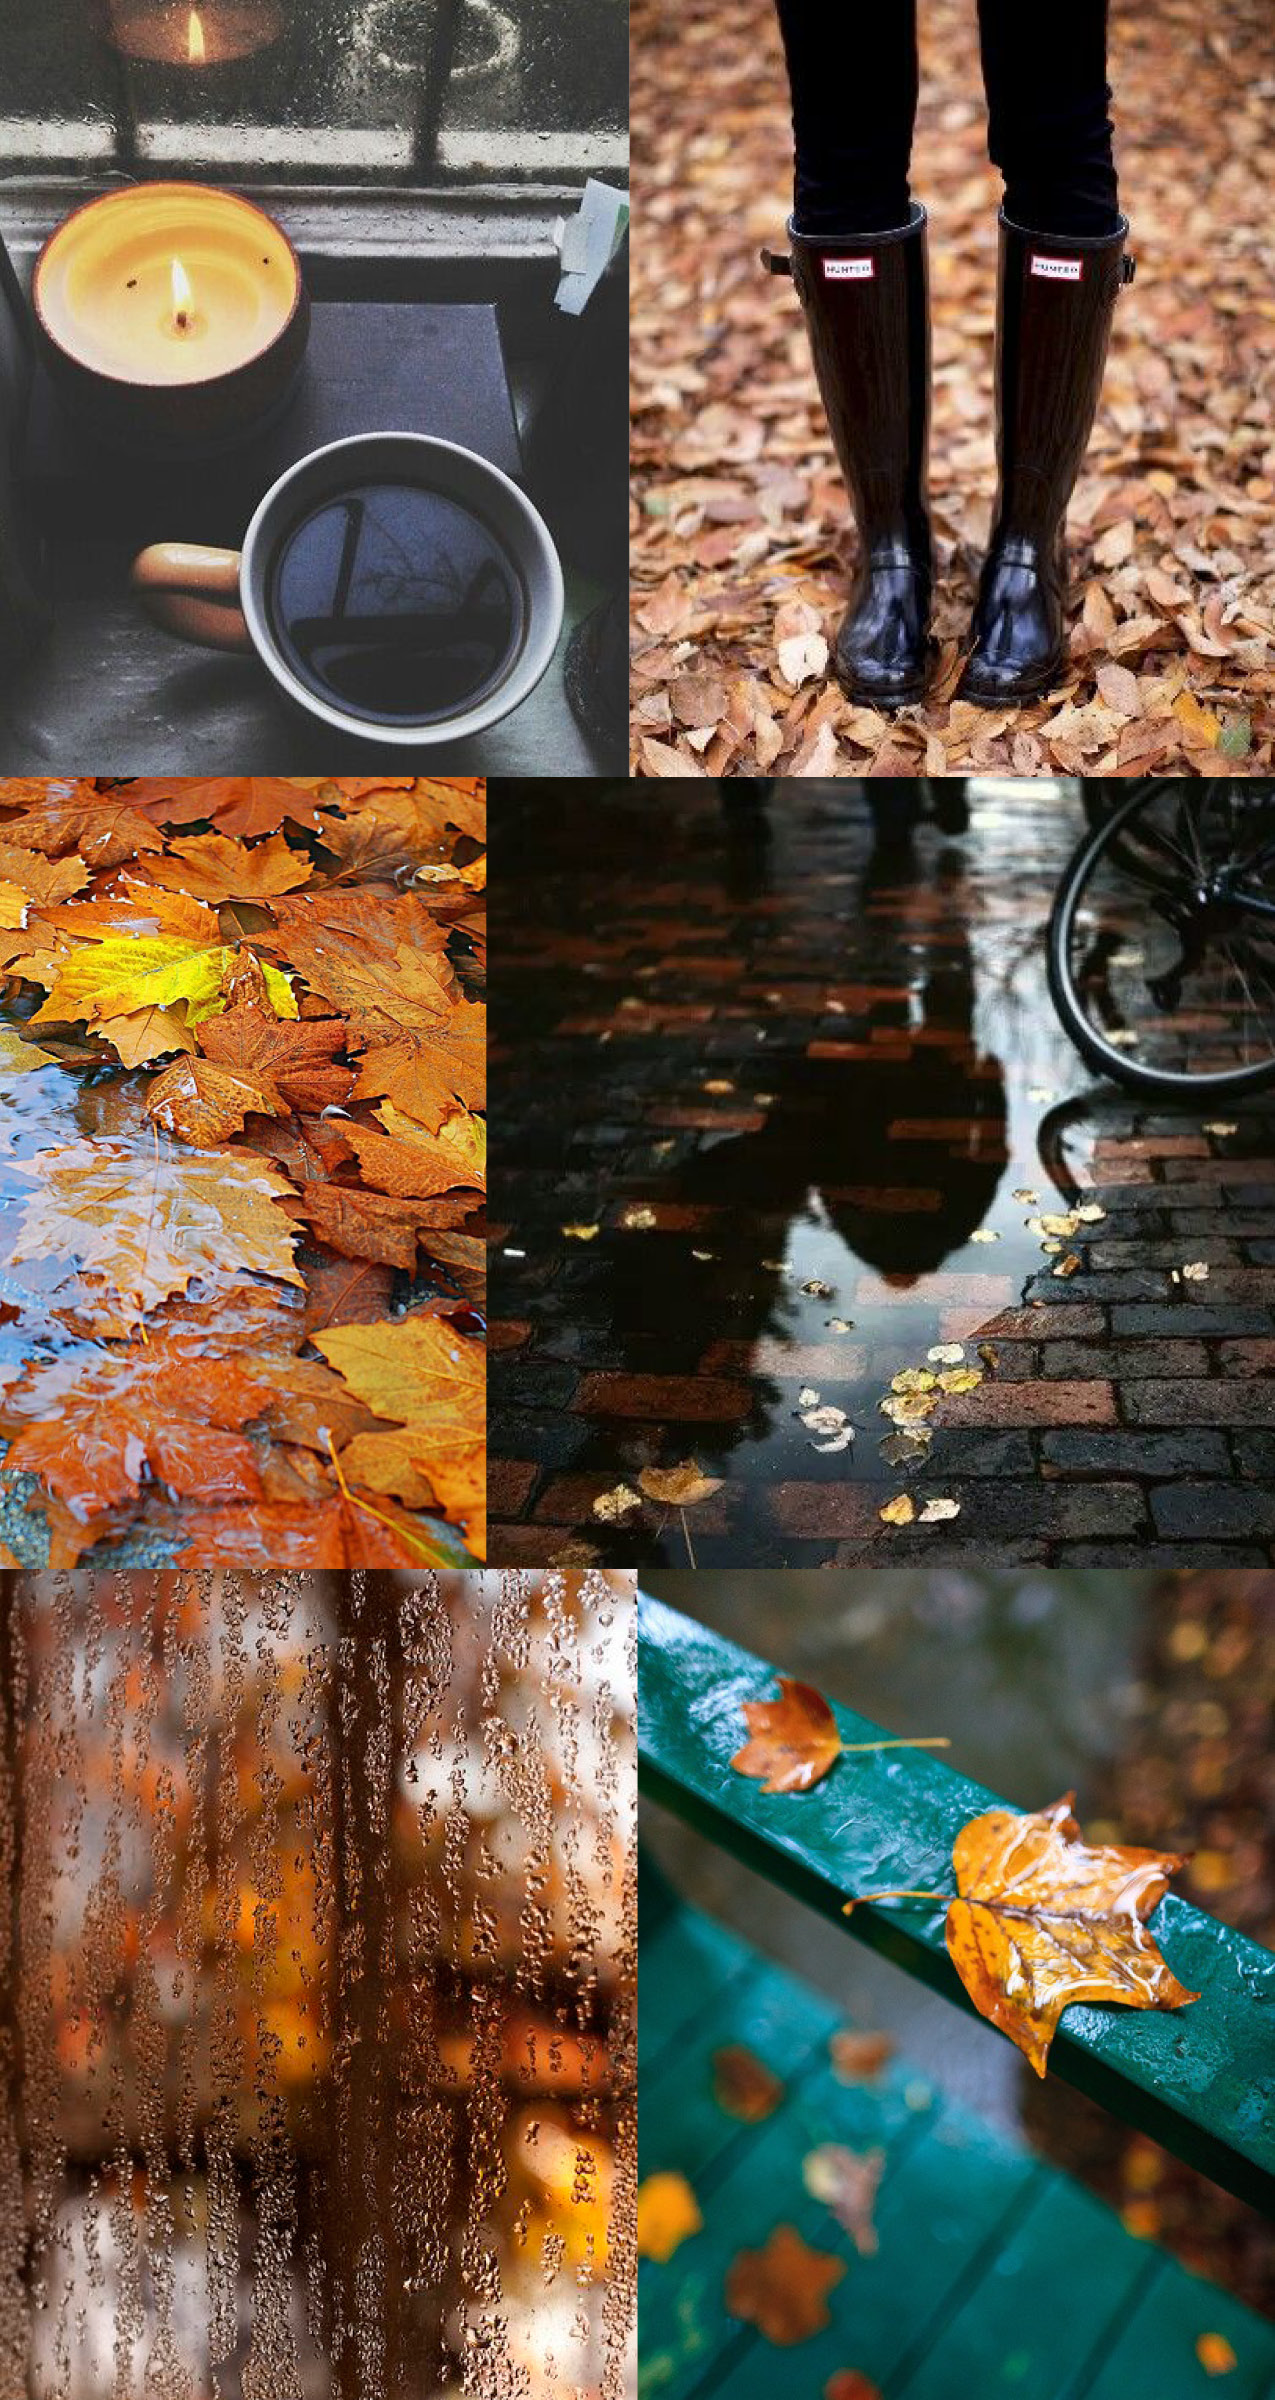 The Yellow Wallpaper Quotes And Analysis Moodboard Rainy Fall Morning Elements